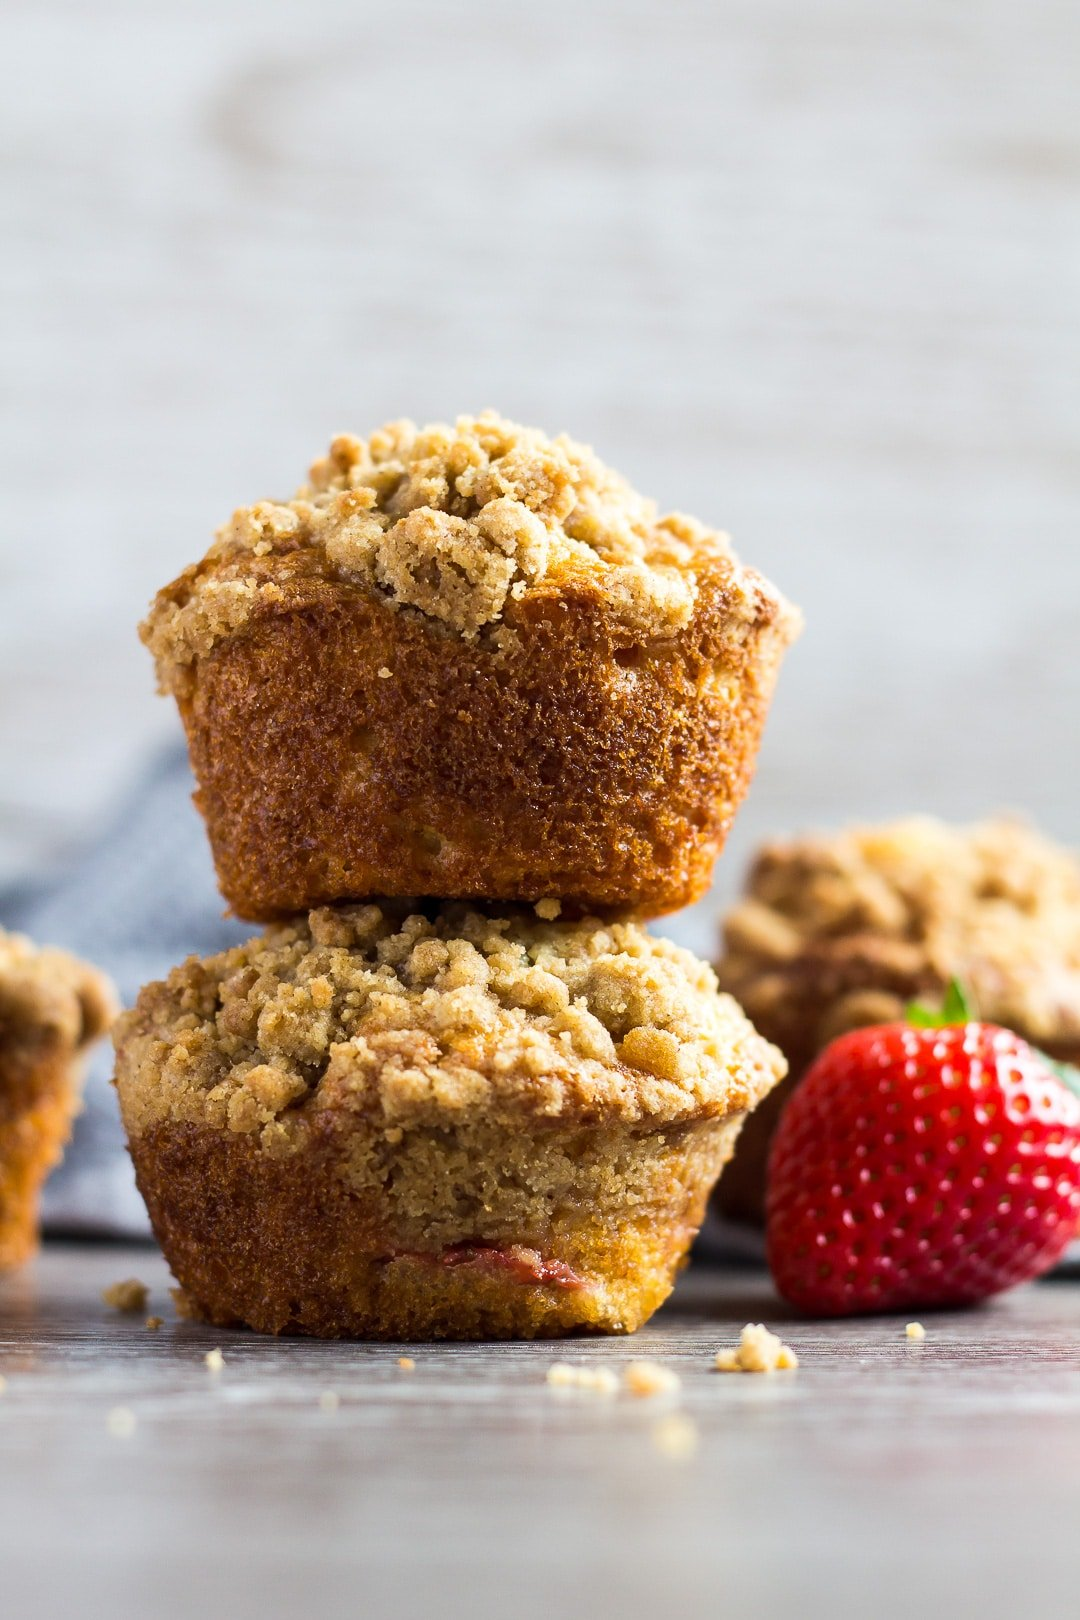 A stack of two Strawberry Crumb Muffins.